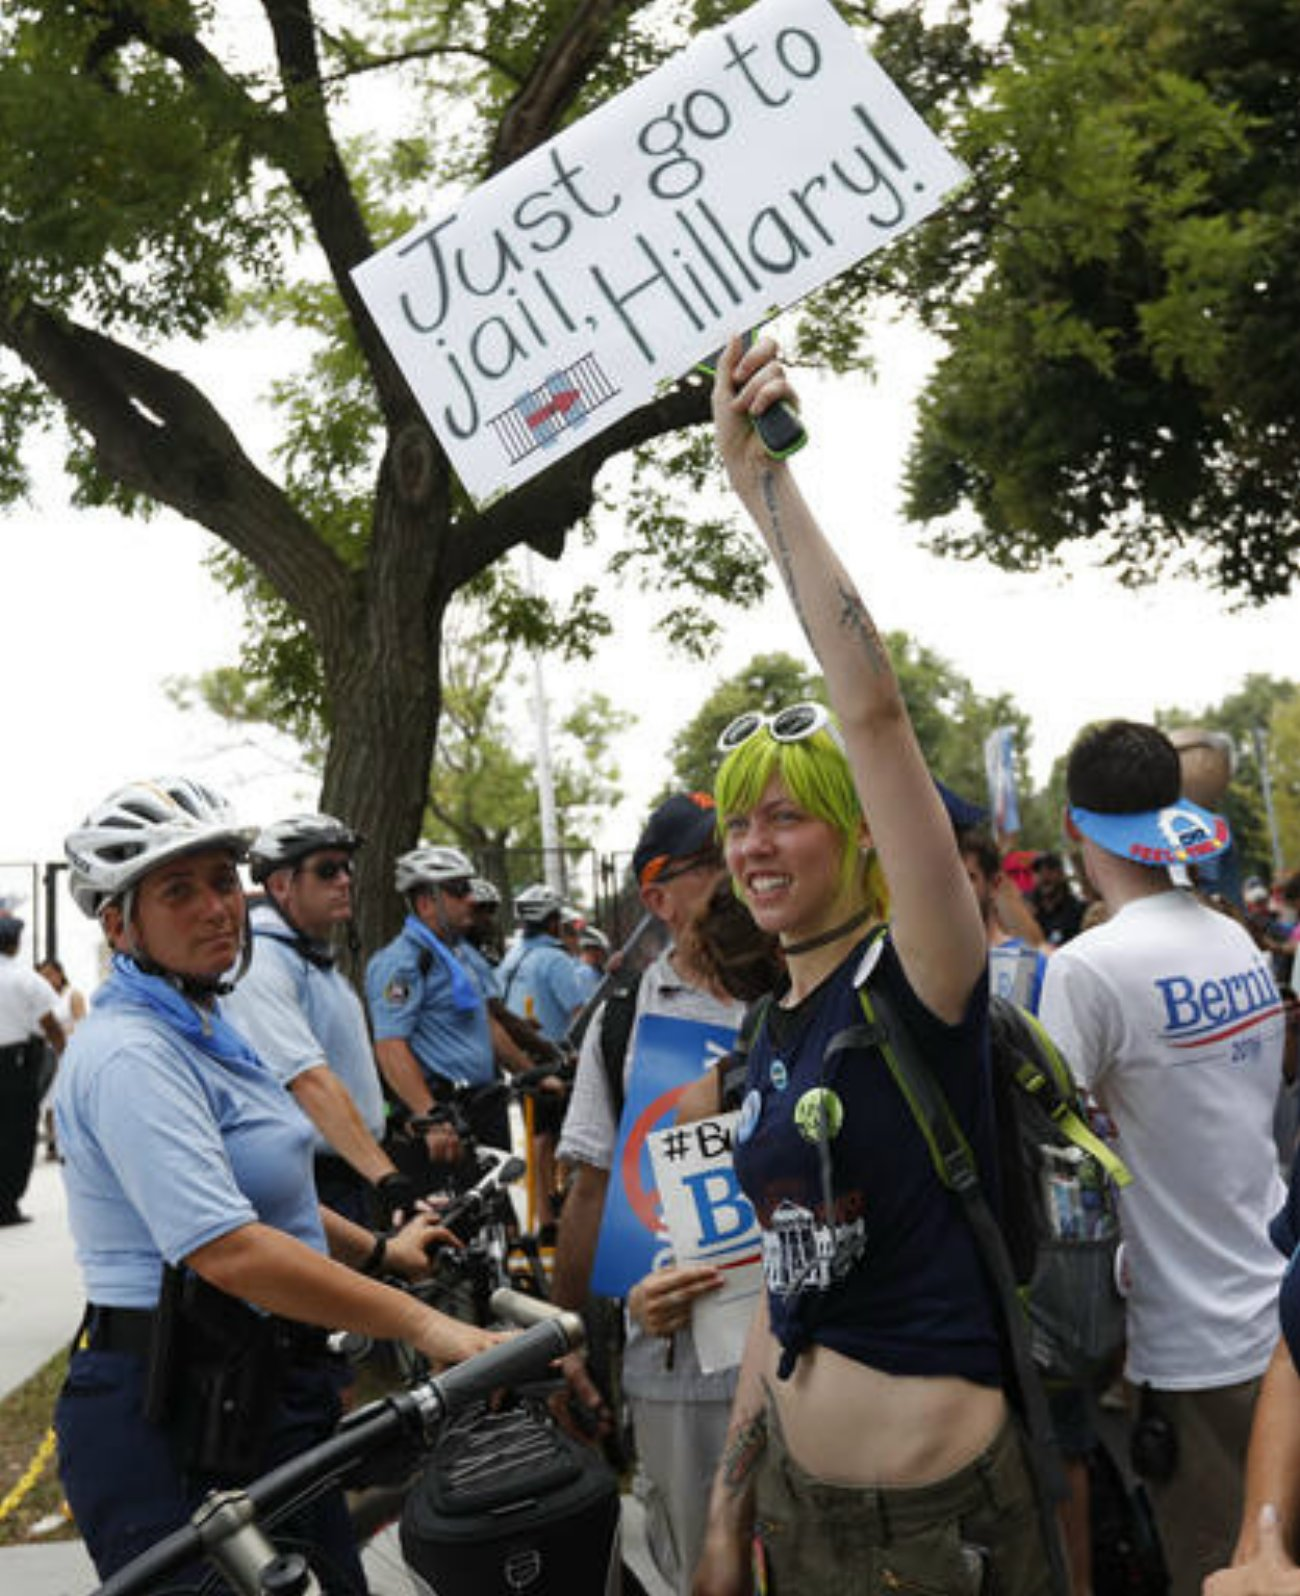 Supporters of Sen. Bernie Sanders, I-Vt., march during a protest in downtown on, Monday, July 25, 2016, in Philadelphia, during the first day of the Democratic National Convention, Philadelphia, Pennsylvania, July 25, 2016 | AP Photo/Alex Brandon courtesy of The Associated Press, St. George News